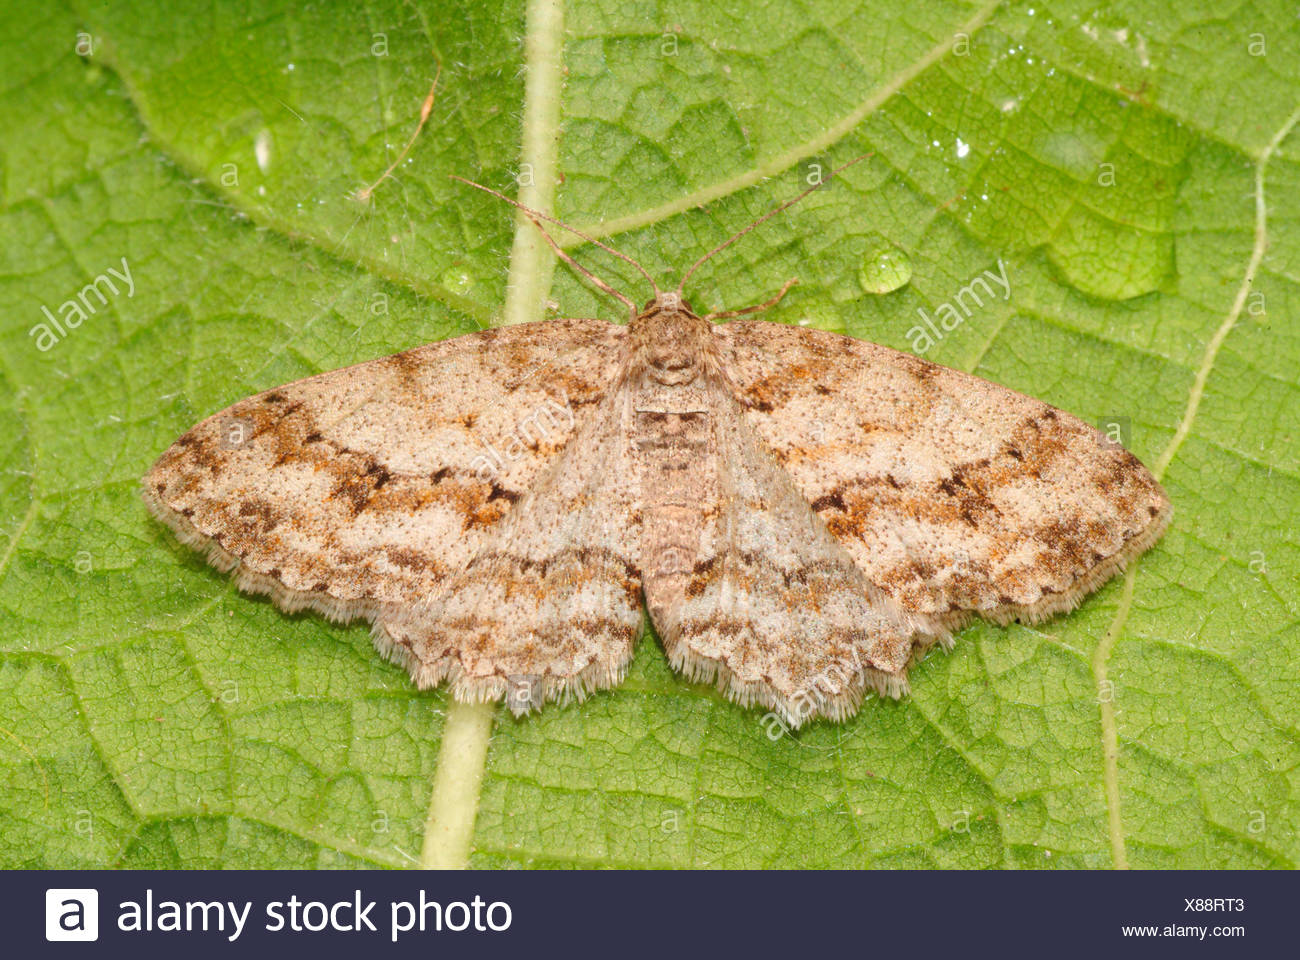 larch looper, blueberry lopper, fir looper, plum looper (Ectropis crepuscularia, Ectropis bistortata), on a leaf, Germany - Stock Image